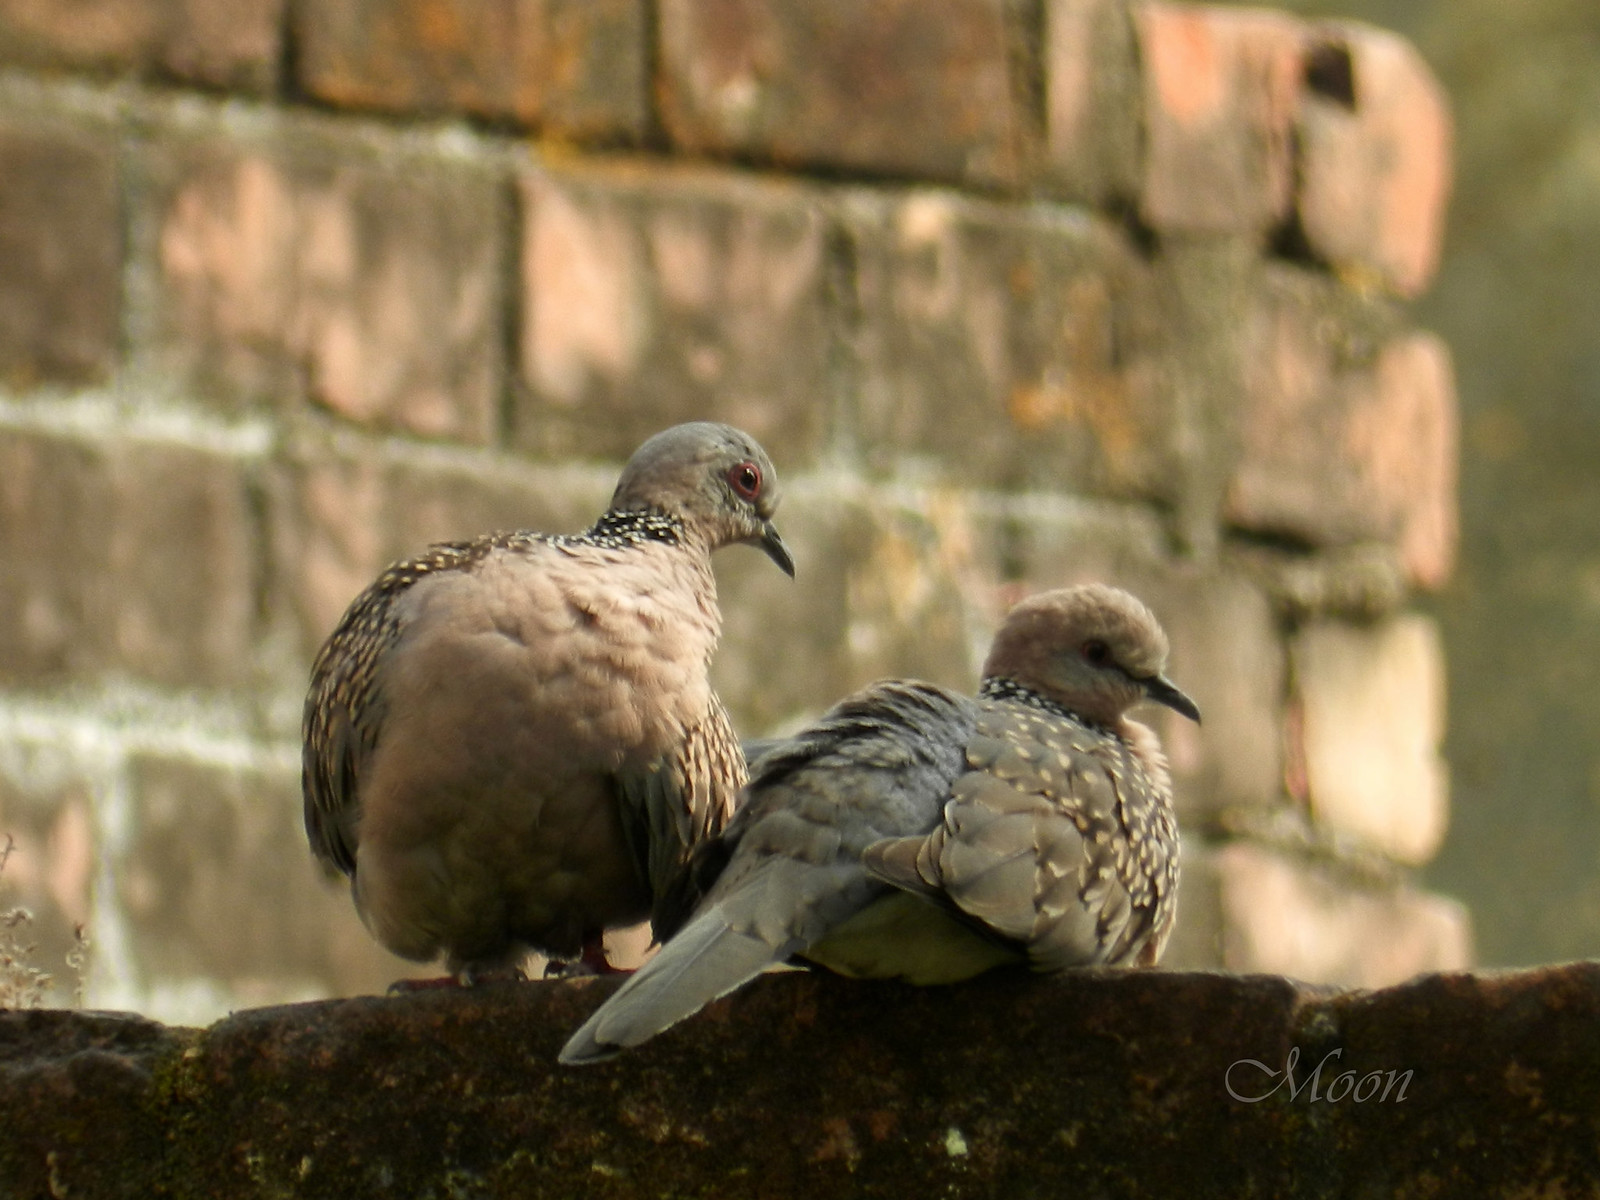 doves, pigeons, partners, birds